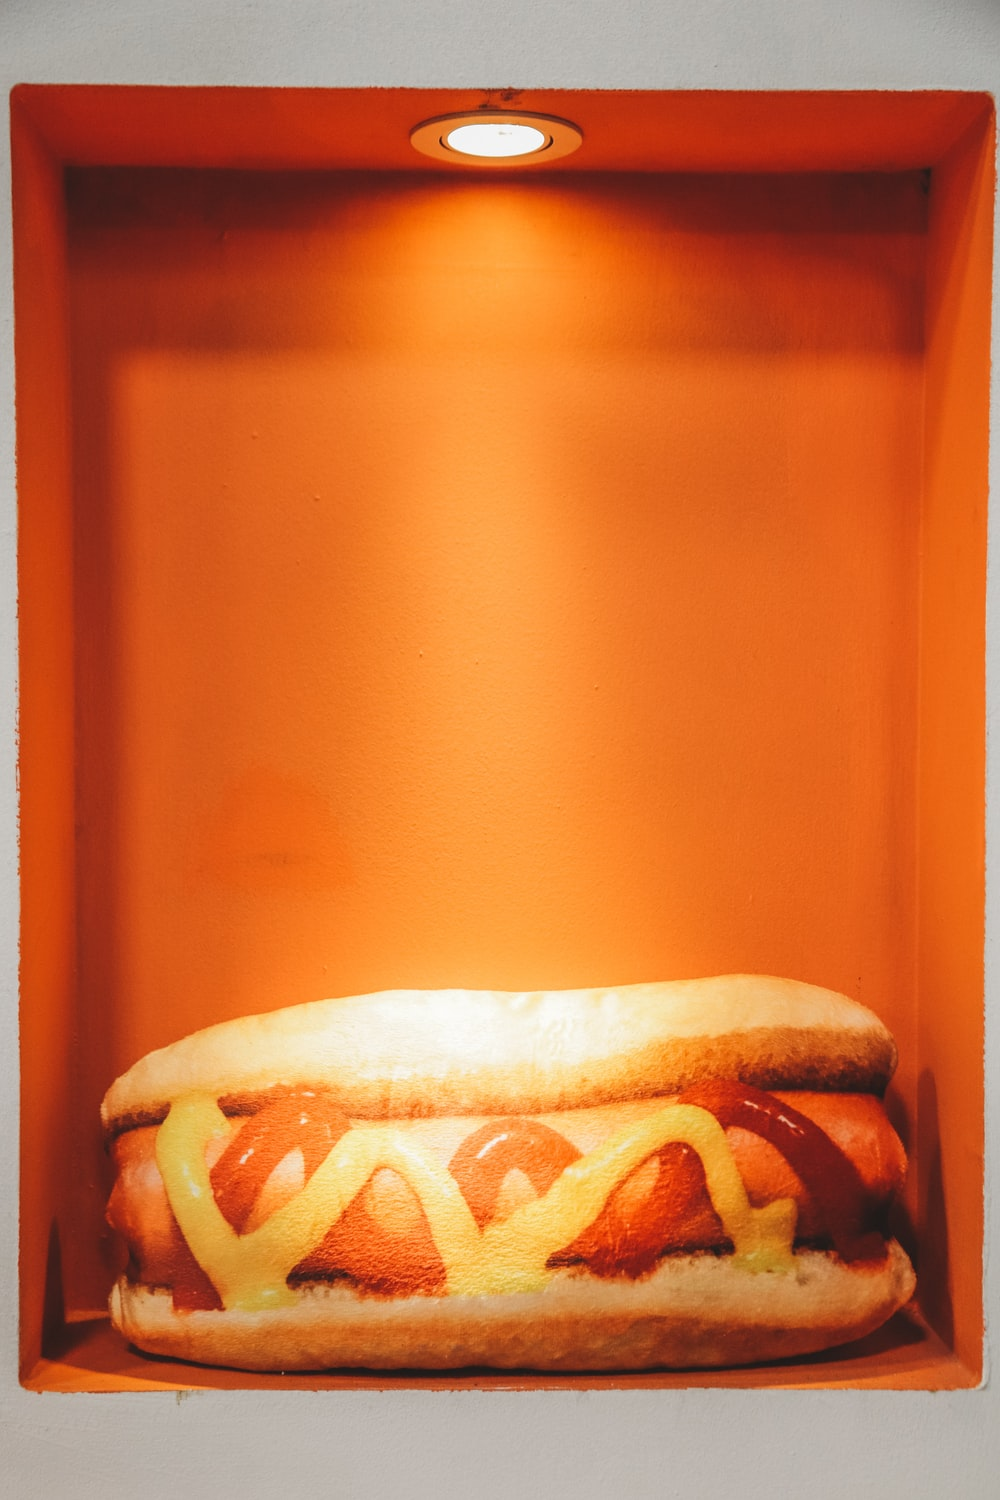 hotdog in bun with ketchup and mustard inside lighted box